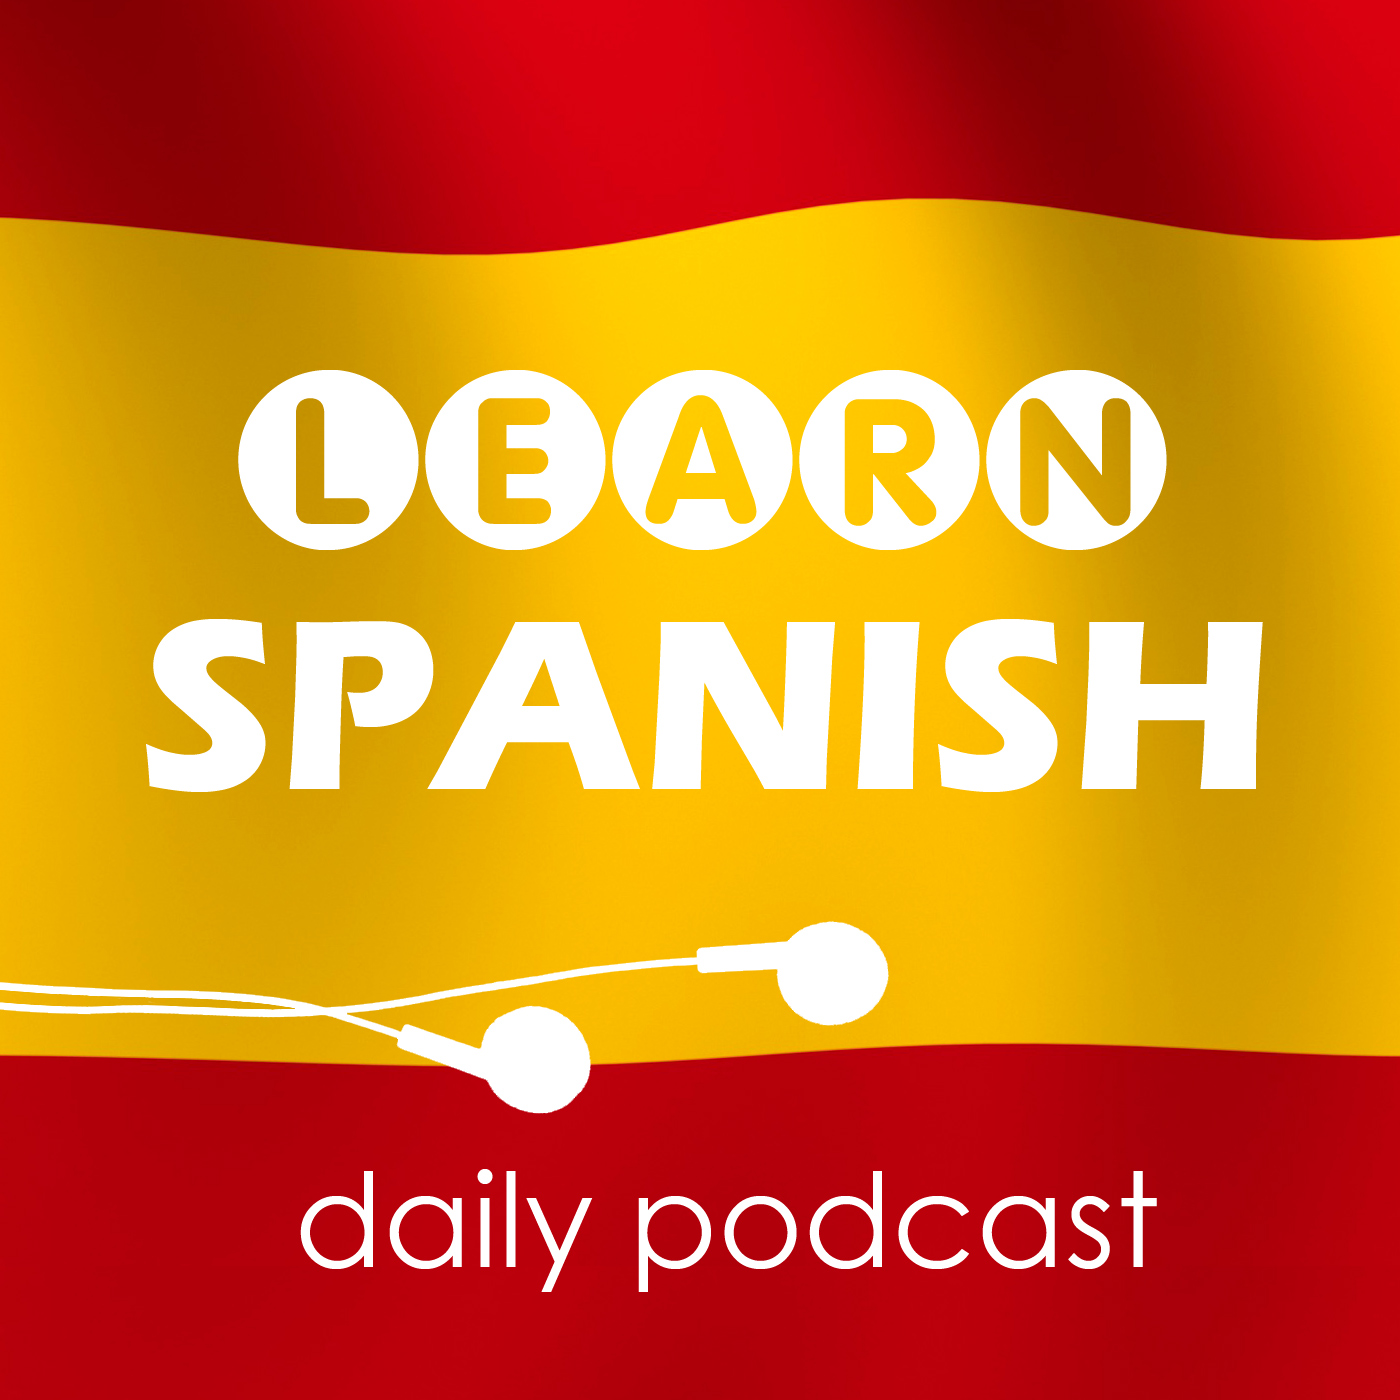 Beginners Spanish Audio Archives - Learn Real Spanish W